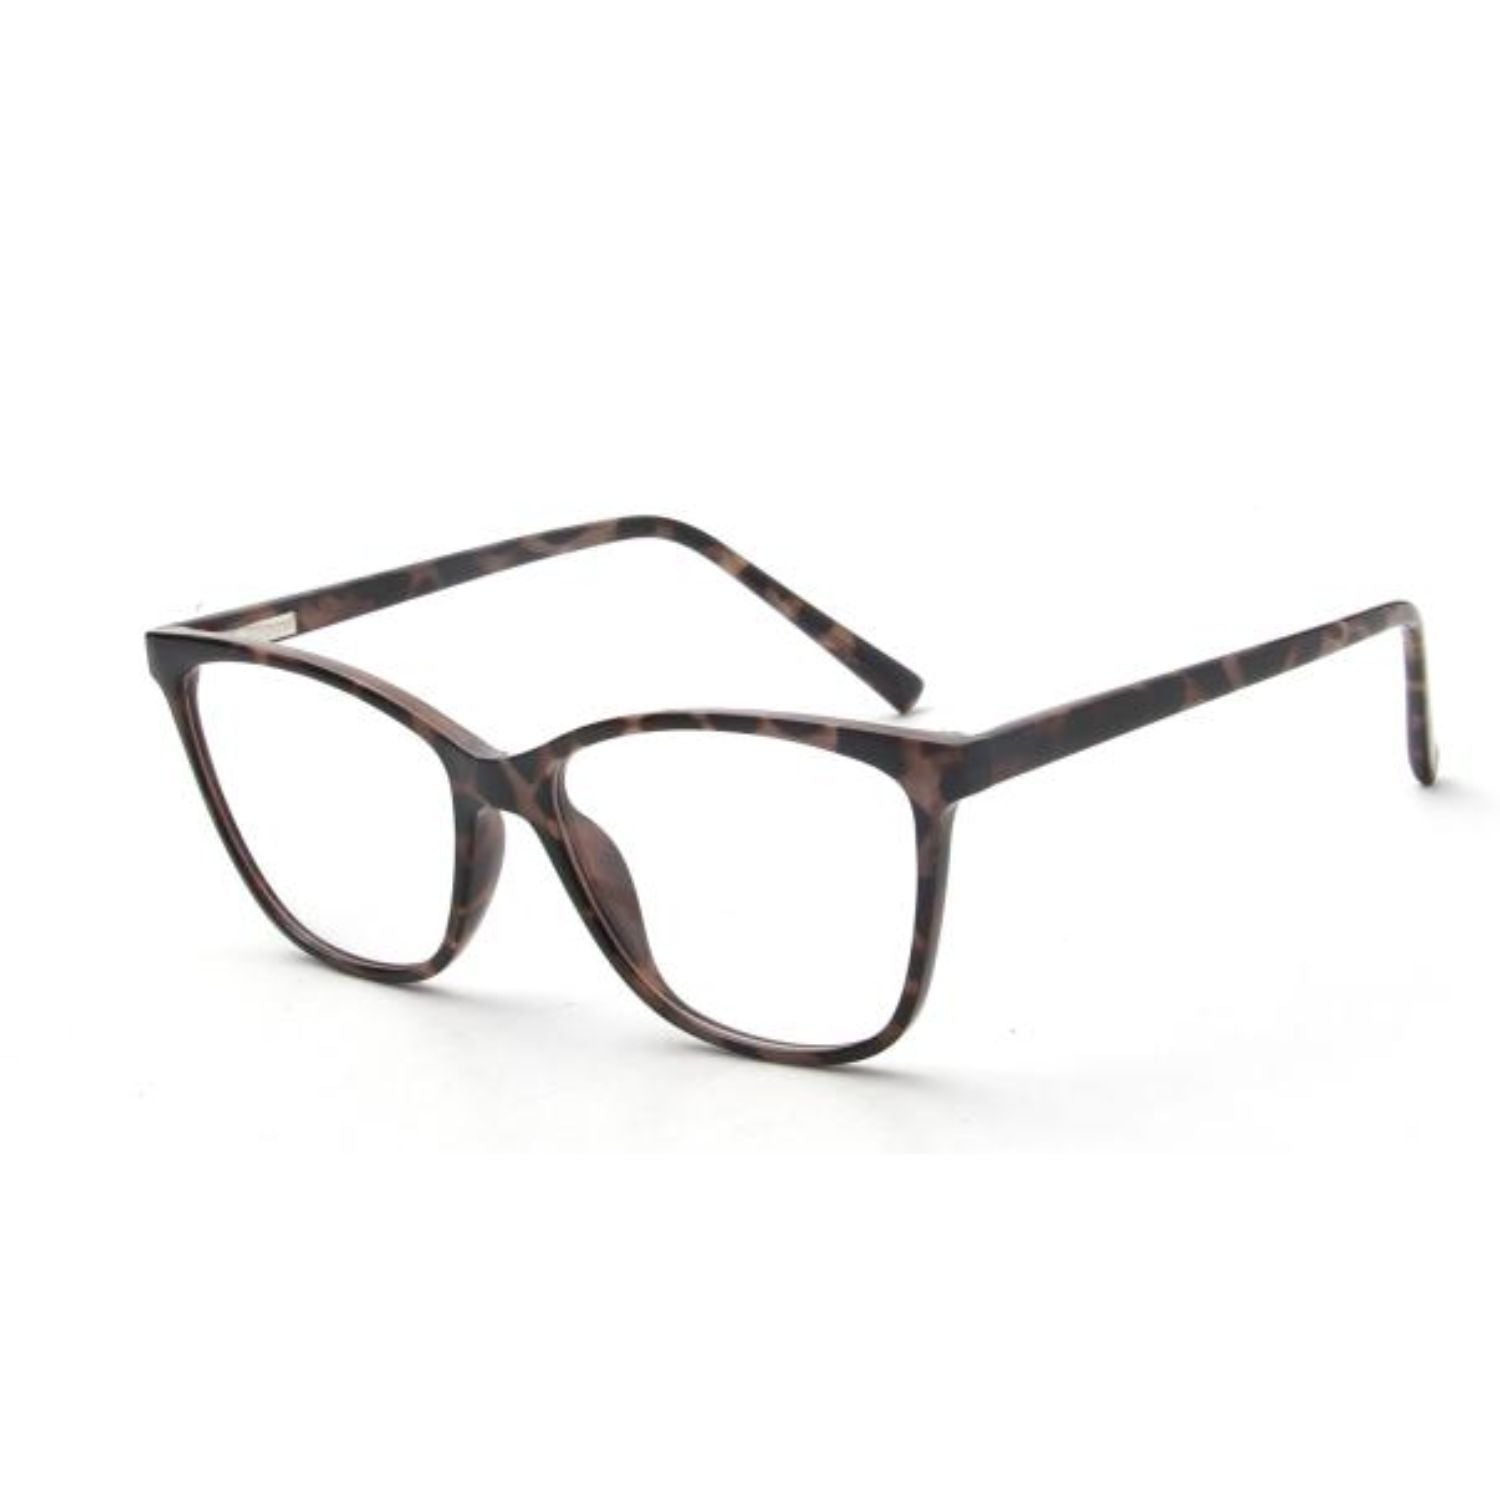 OTR32 - Women Horn Rimmed Fashion Optical Eyeglasses - Iris Fashion Inc. | Wholesale Sunglasses and Glasses